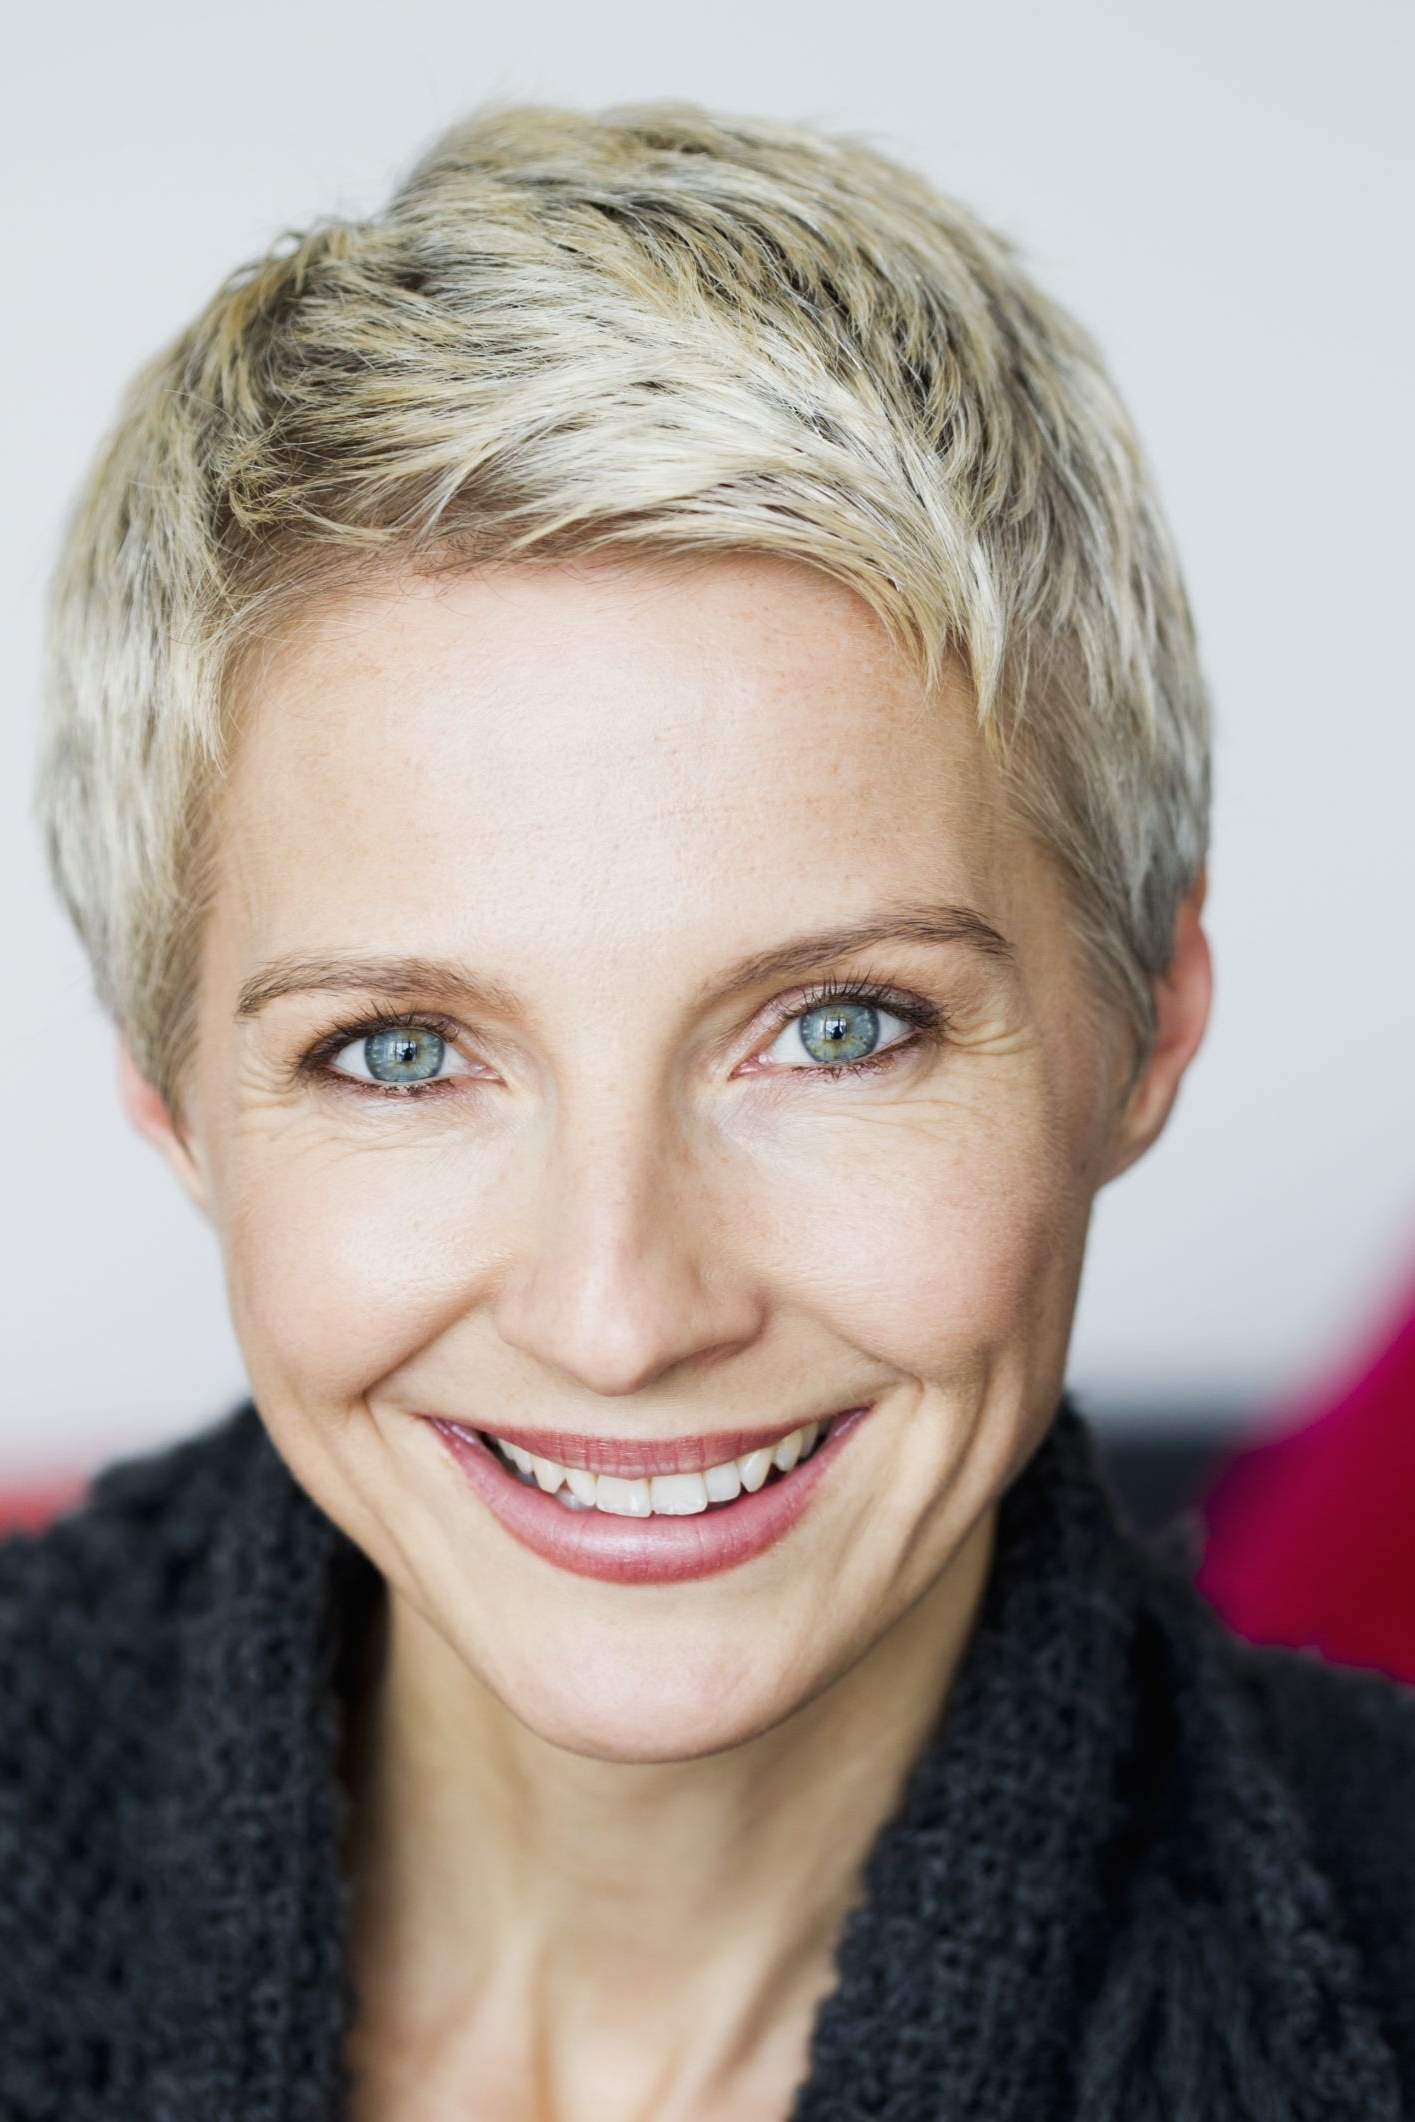 15 Best Pixie Hairstyles For Women Over 50